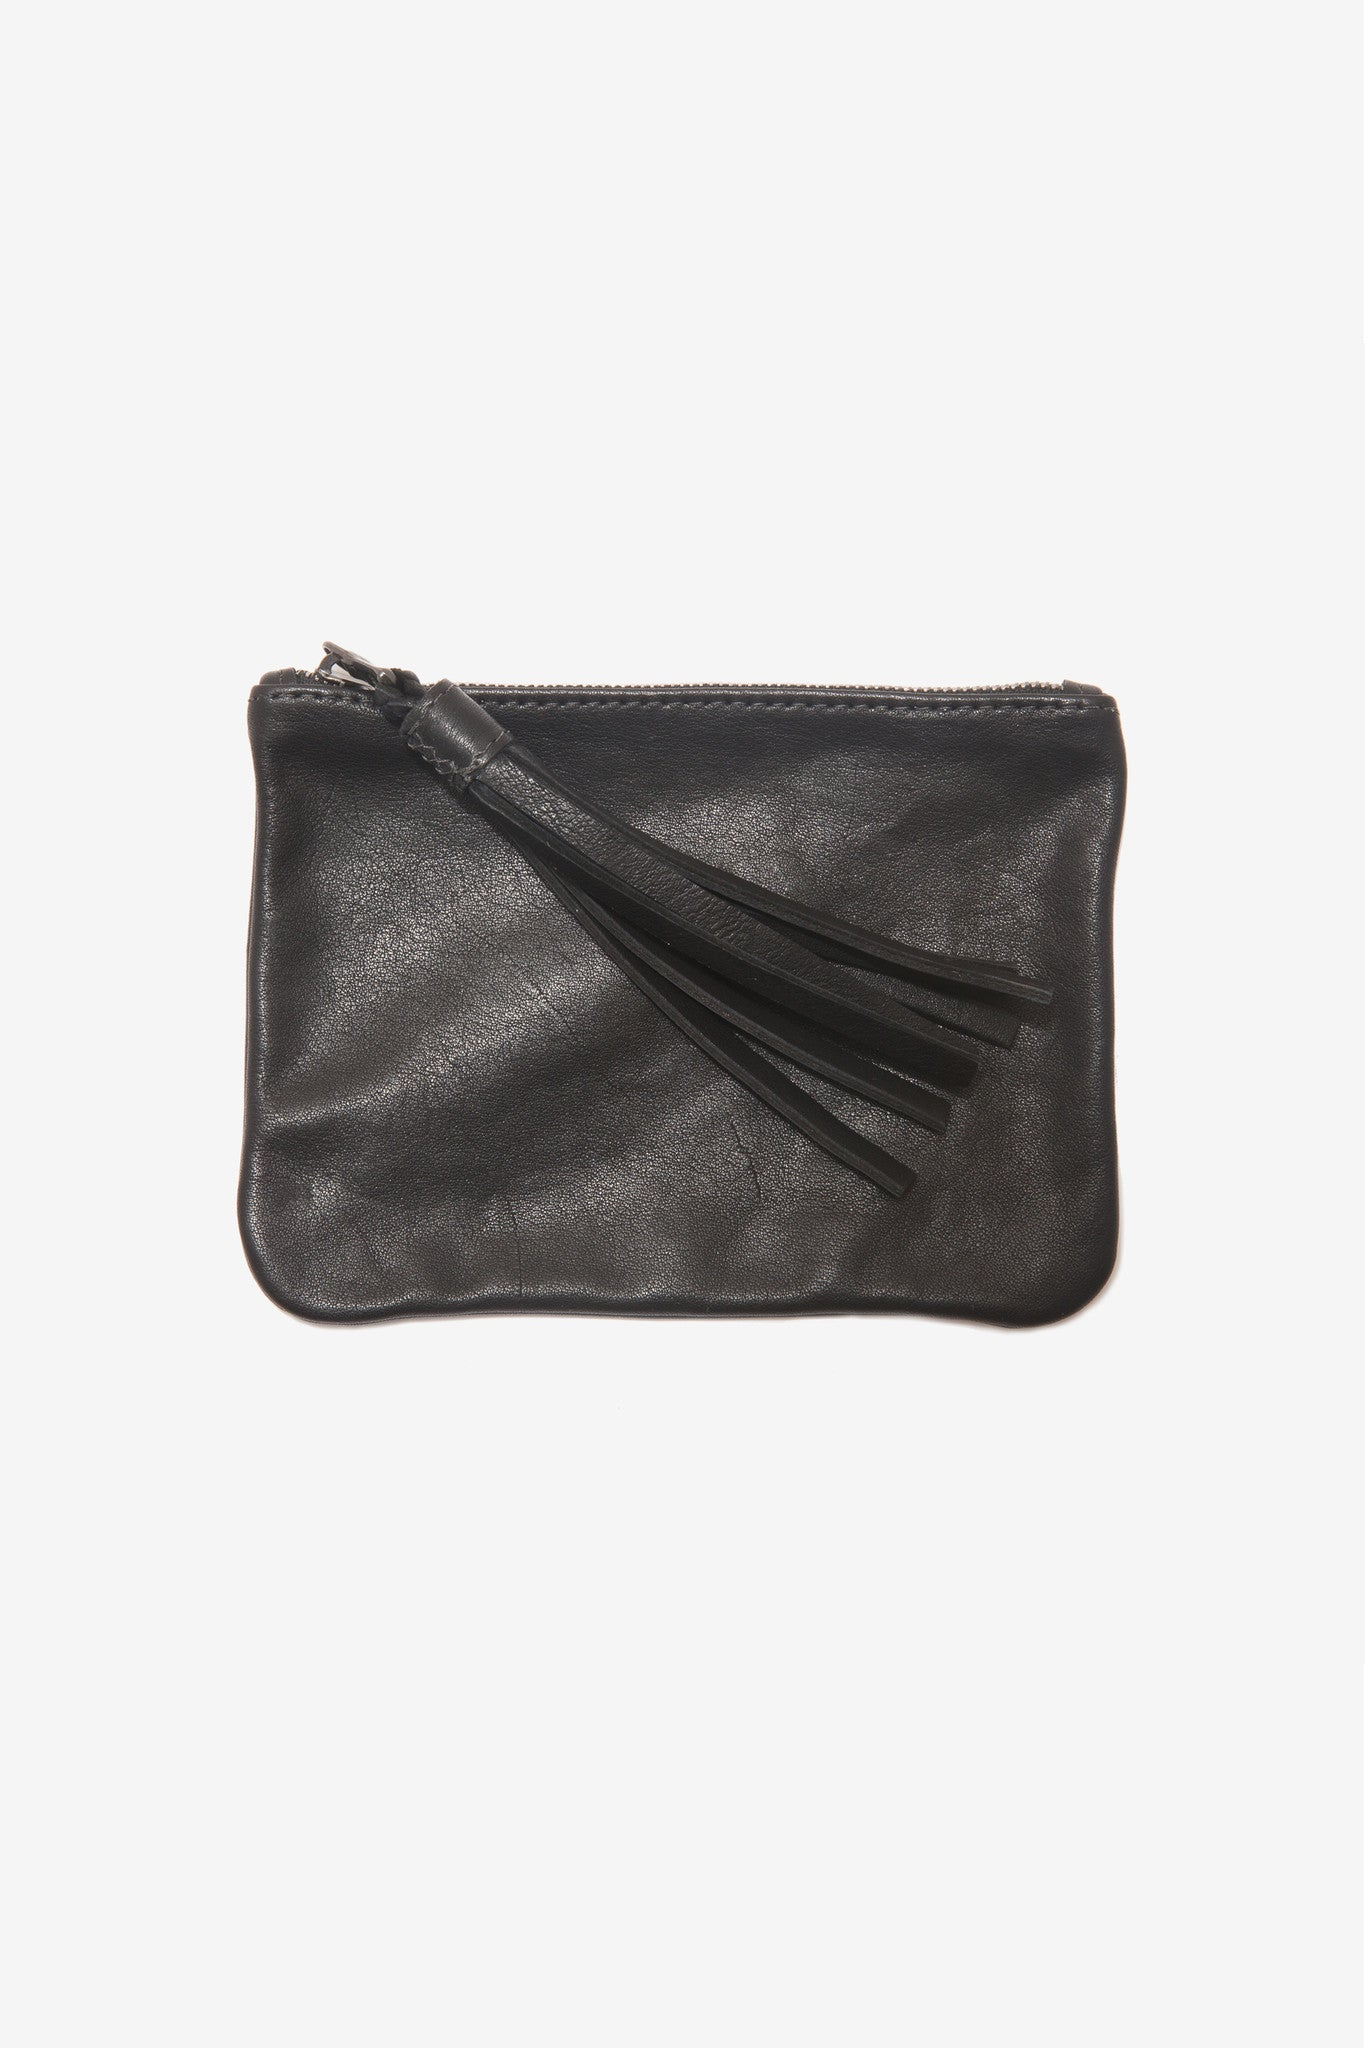 The Medium Black Pouch is a medium leather pouch with a leather tassel zip by Moses Nadel.